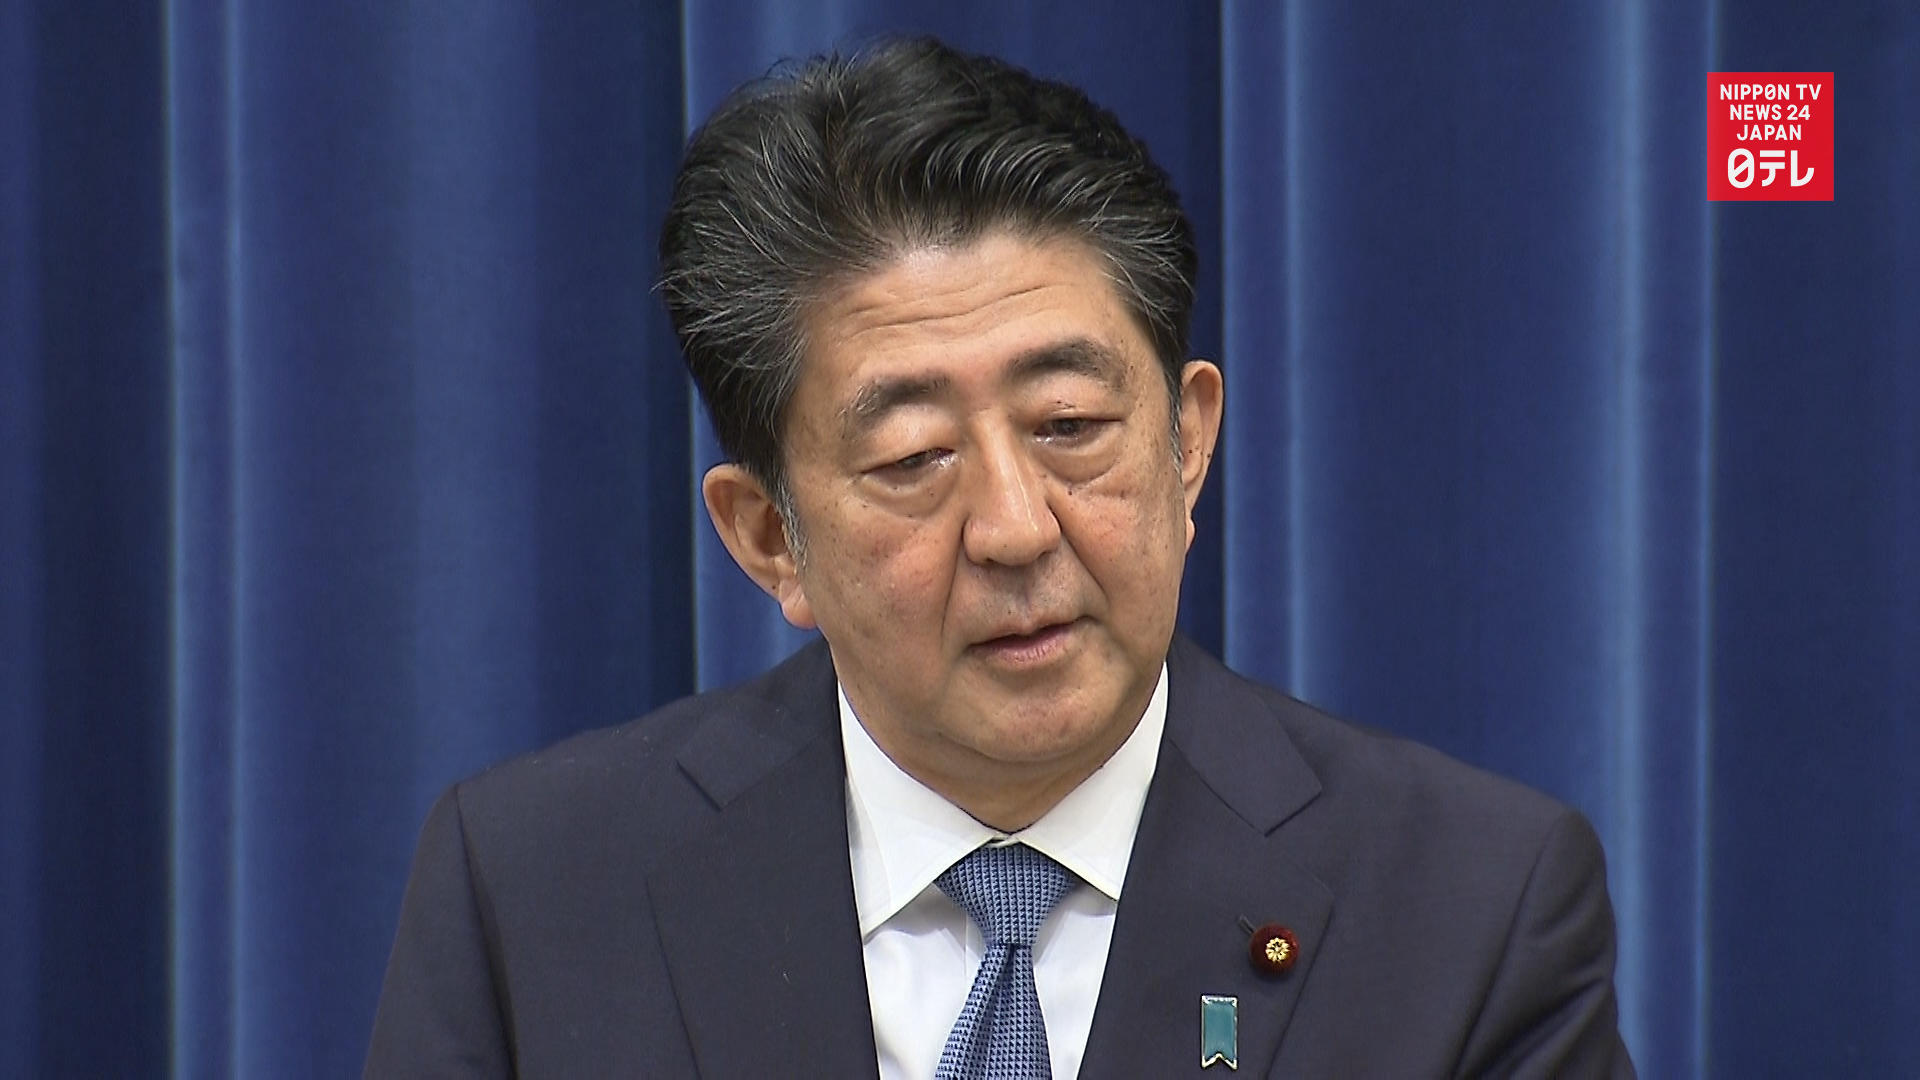 PM Abe to step down over health issues